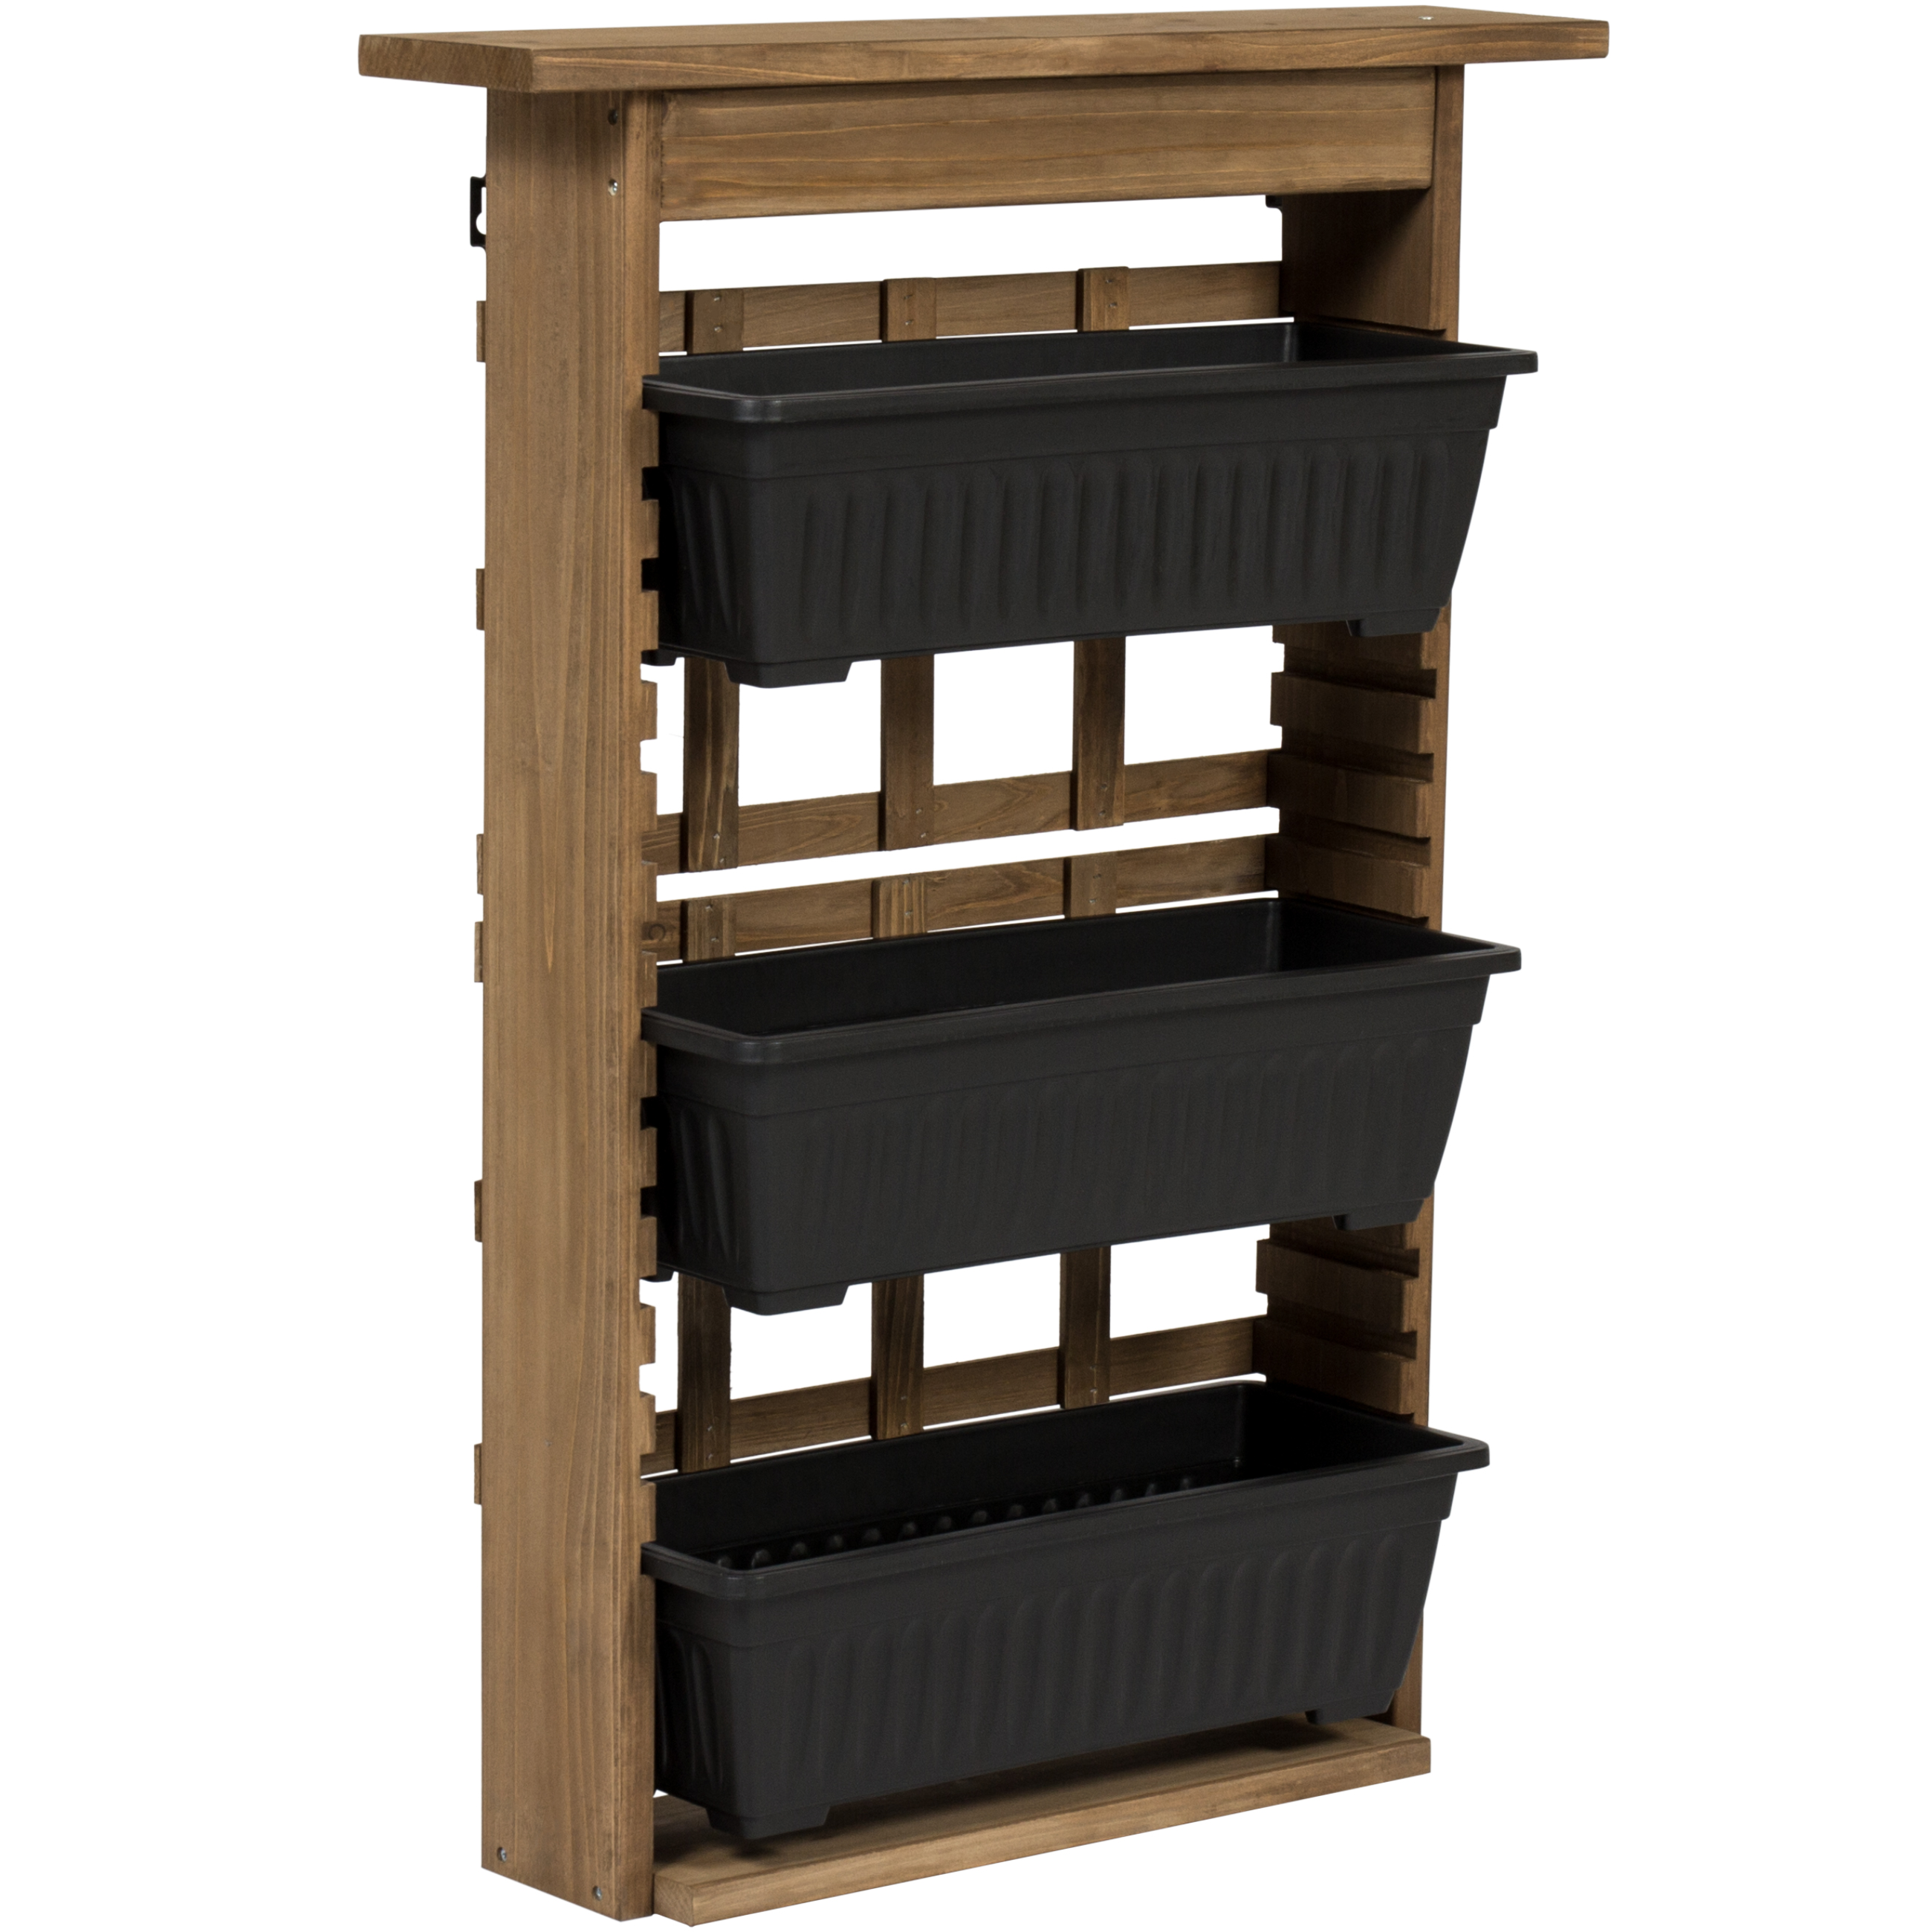 Best Choice Products 3-Tier Outdoor Rustic Wooden Garden Vertical Wall Mount Planter - Brown